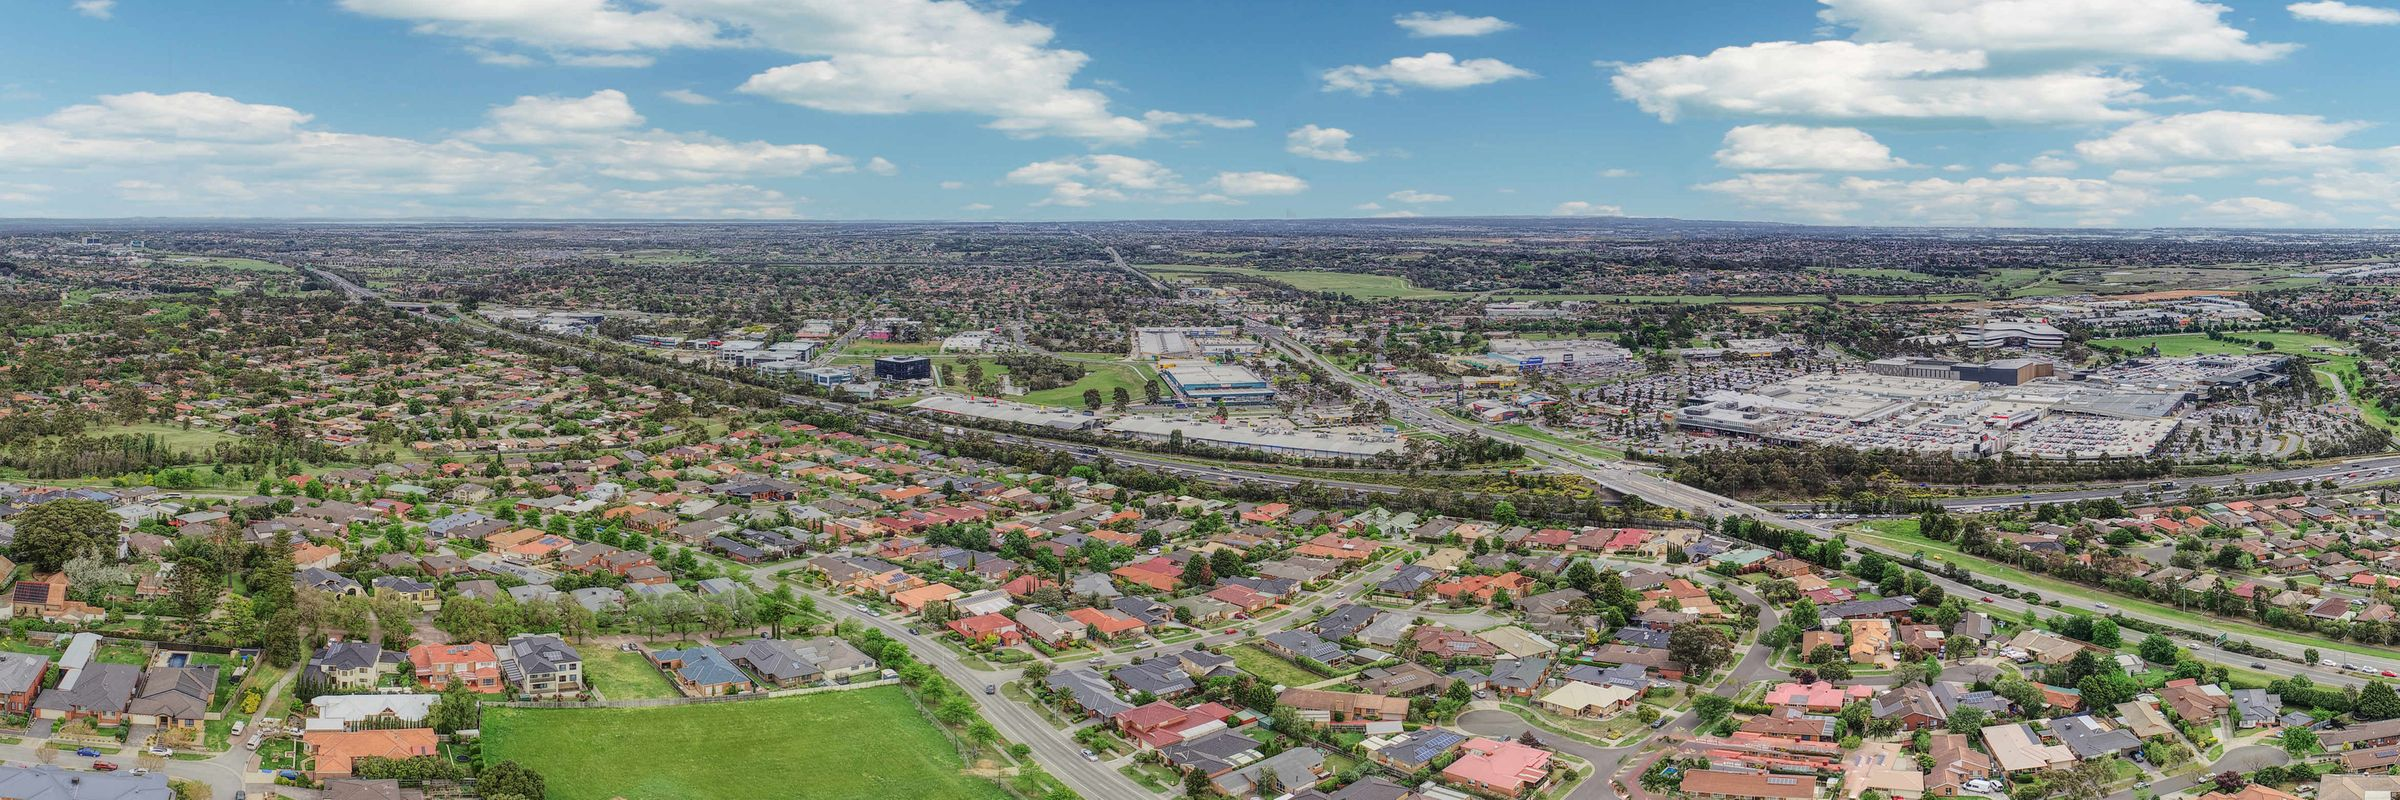 Narre Warren